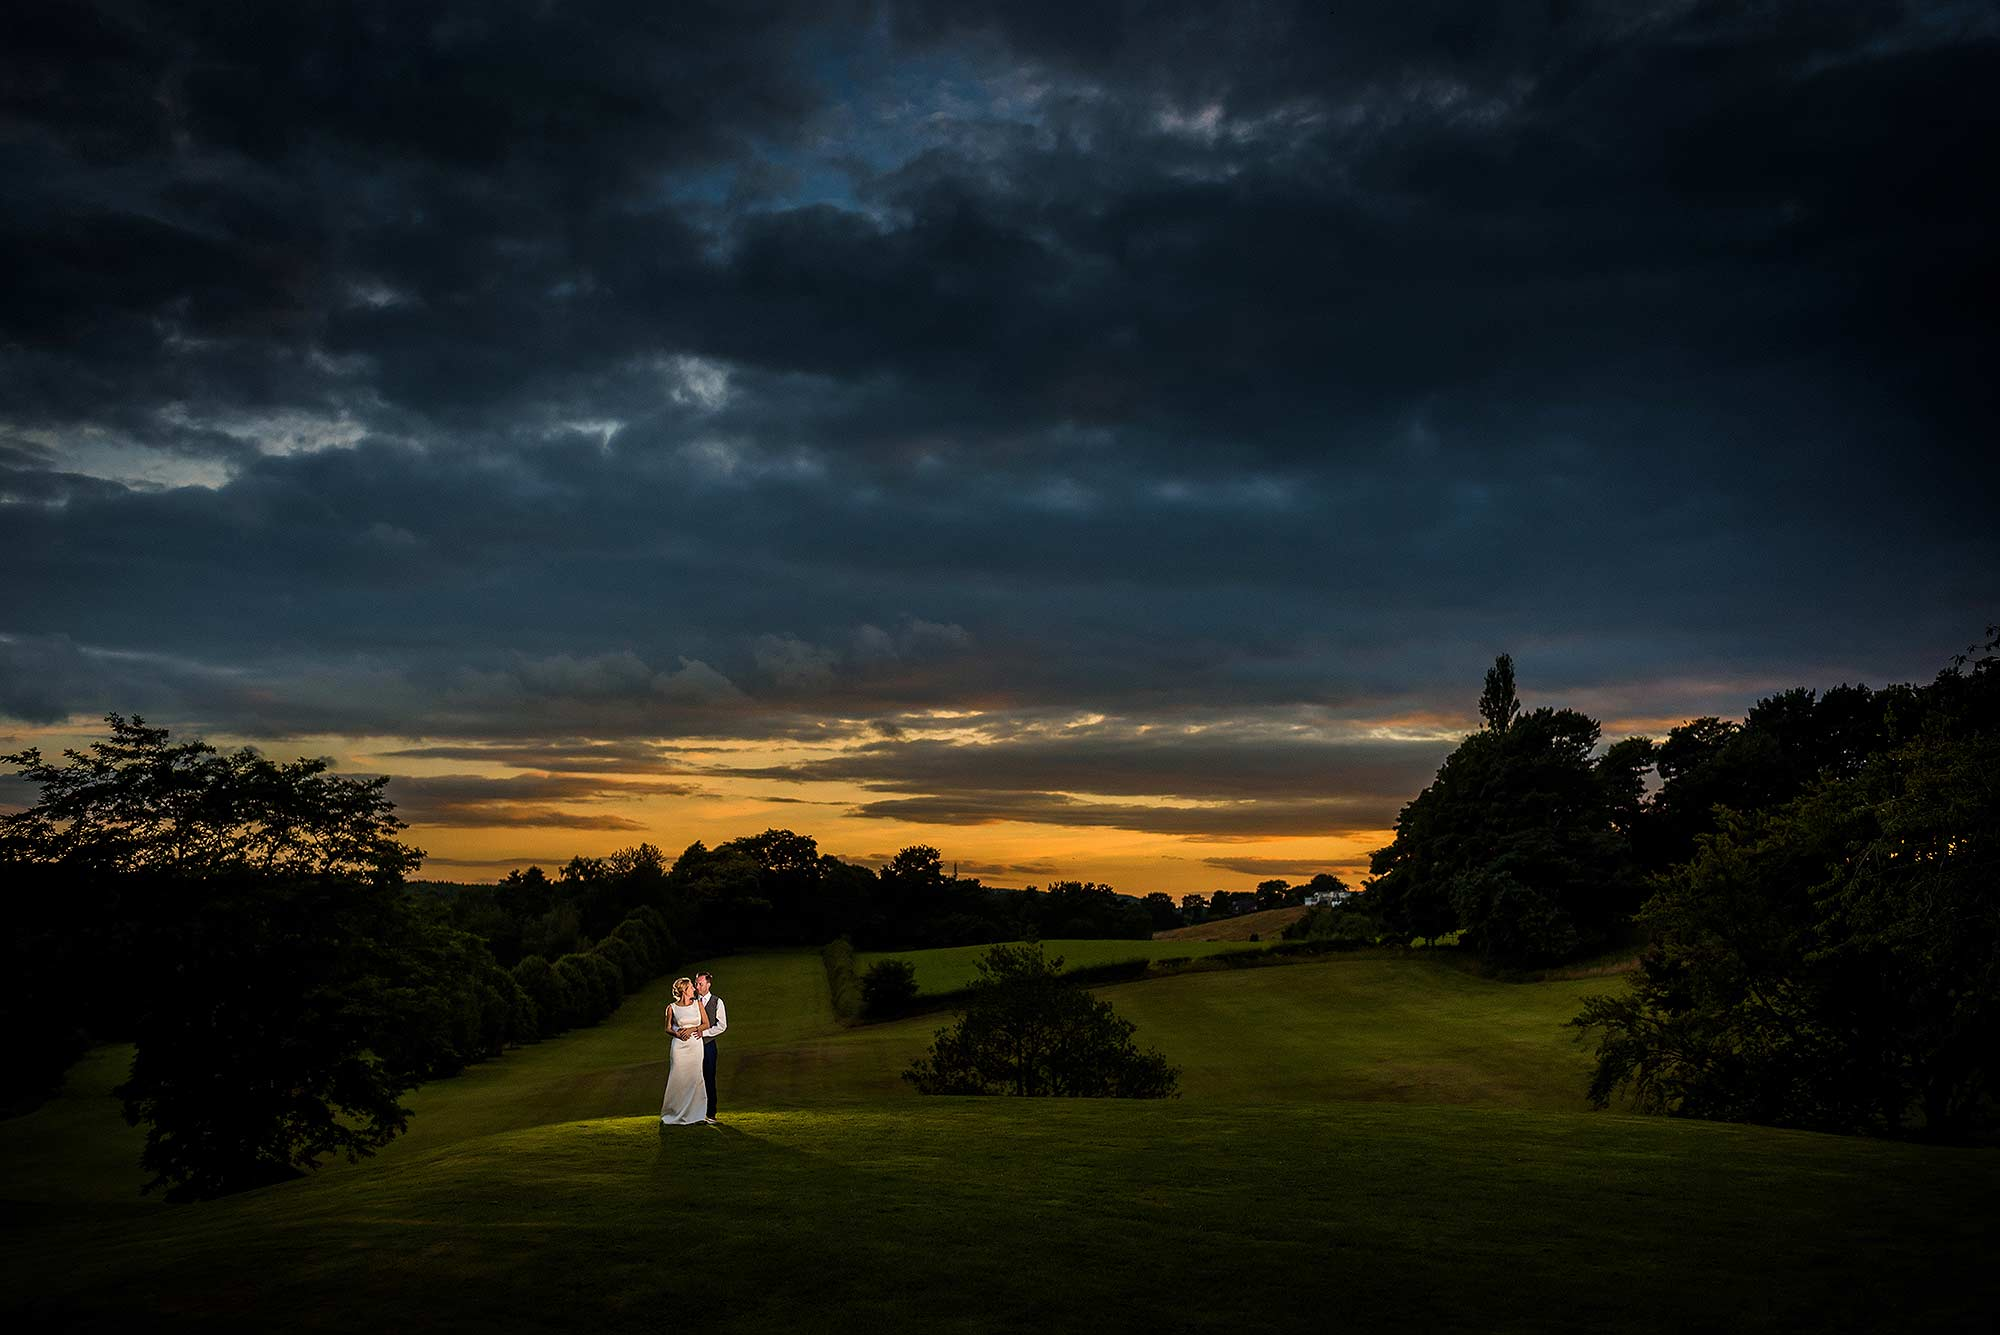 wide angle off camera flash portrait of bride and groom in Cheshire